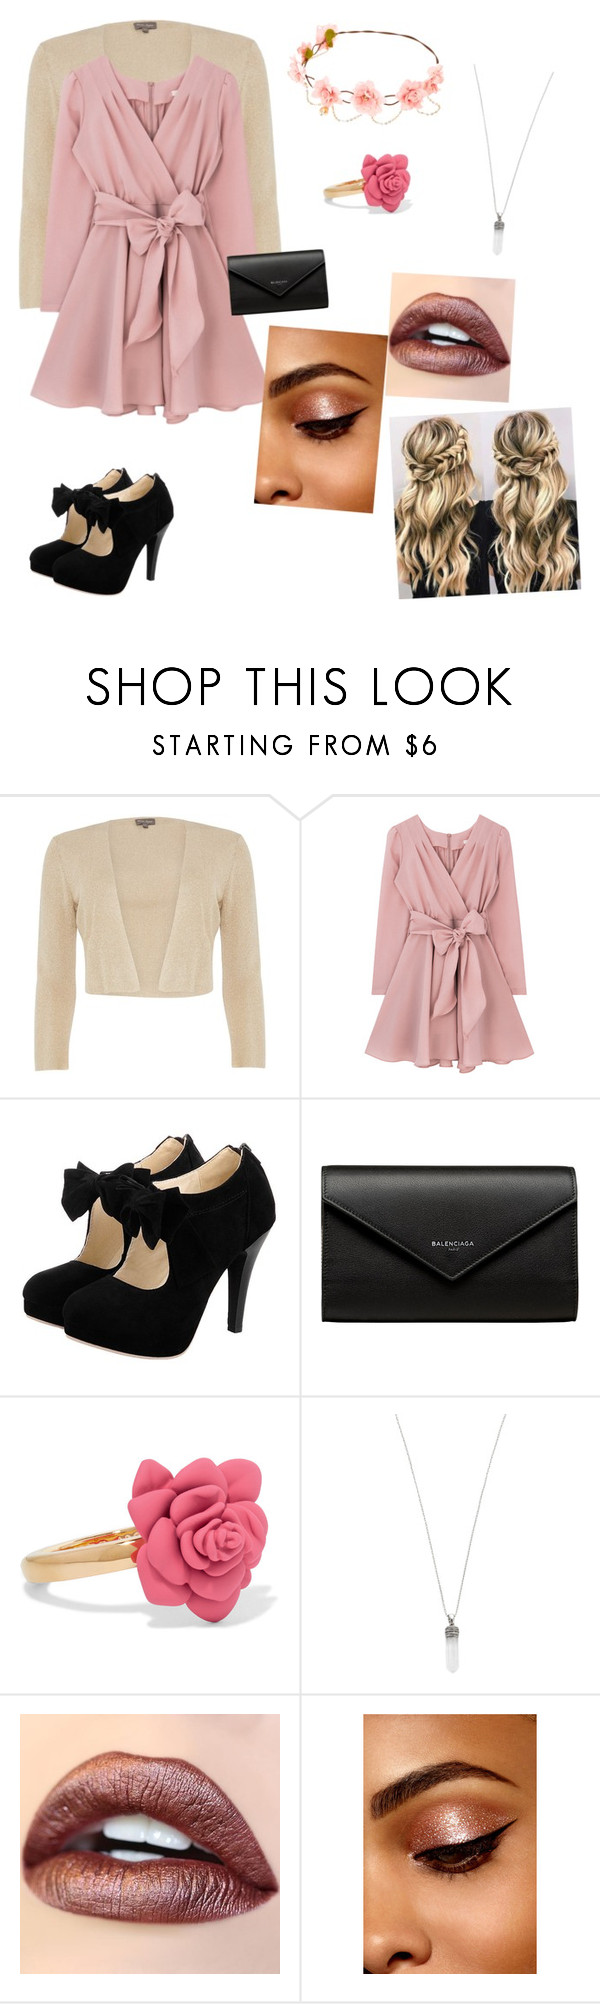 """""""Untitled #155"""" by bellalestrange49 ❤ liked on Polyvore featuring Phase Eight, Balenciaga, Marc by Marc Jacobs and Marc Jacobs"""